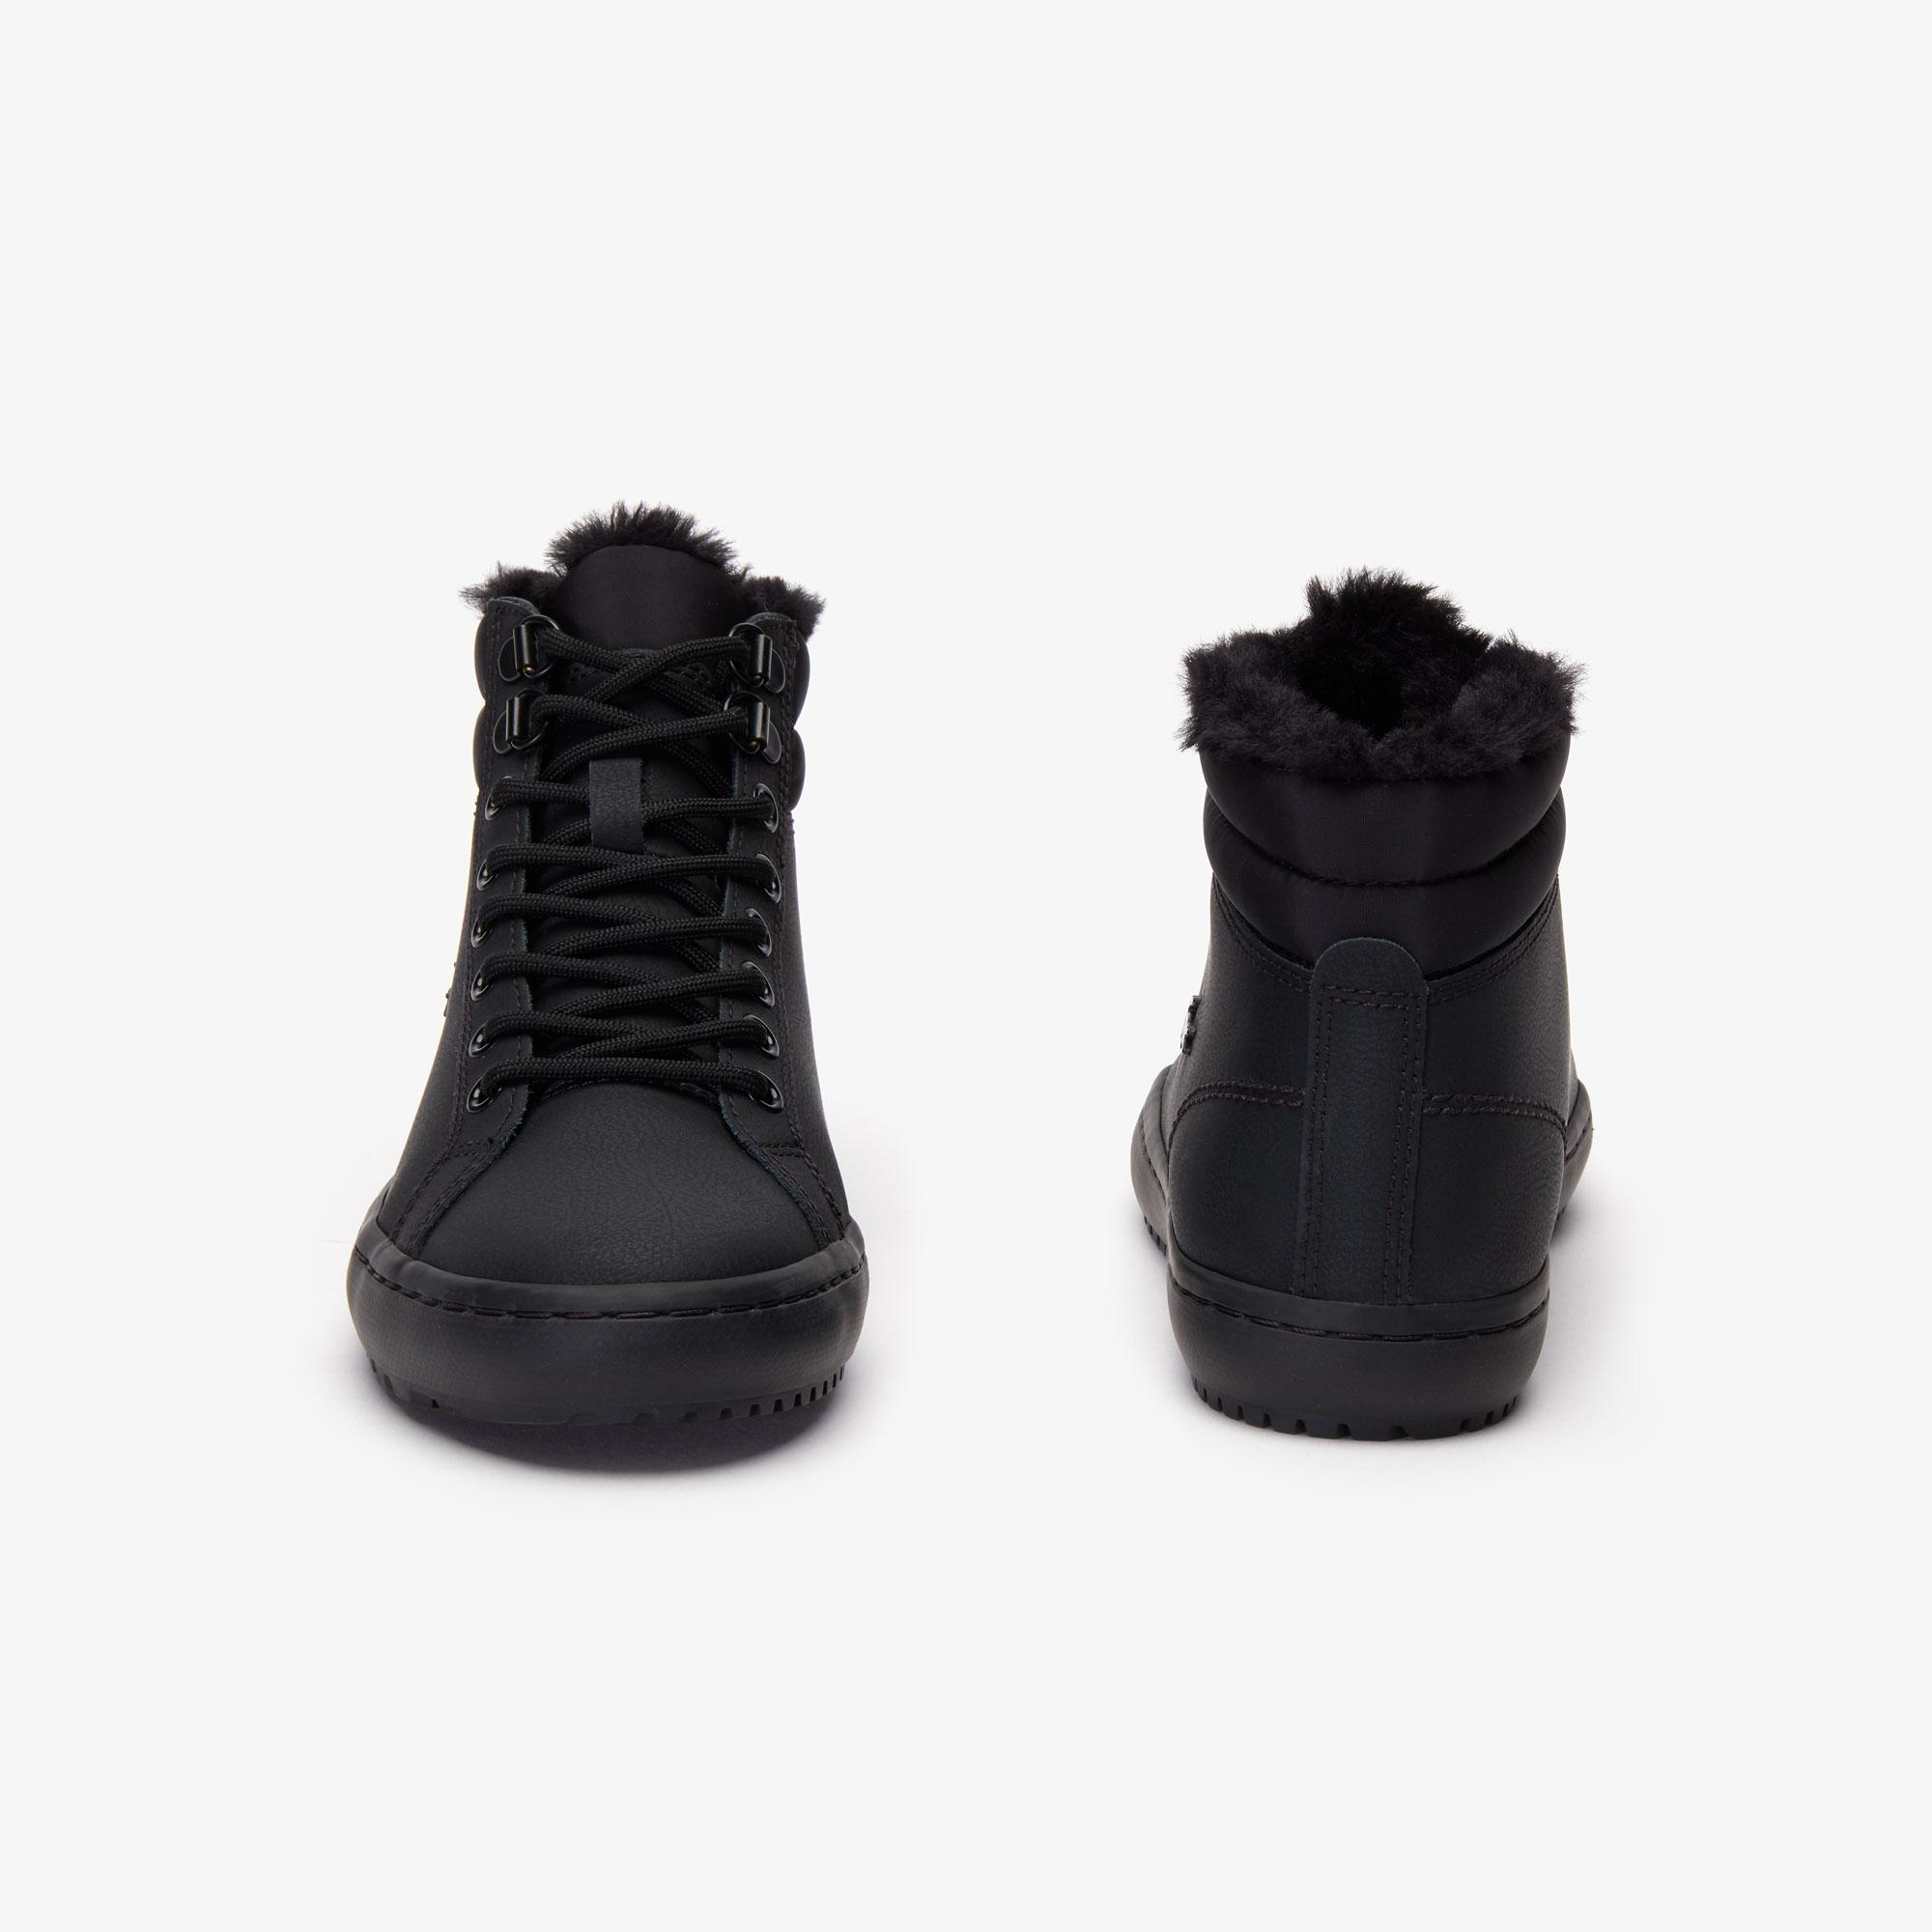 Lacoste Straightset Thermo 4191 Boots